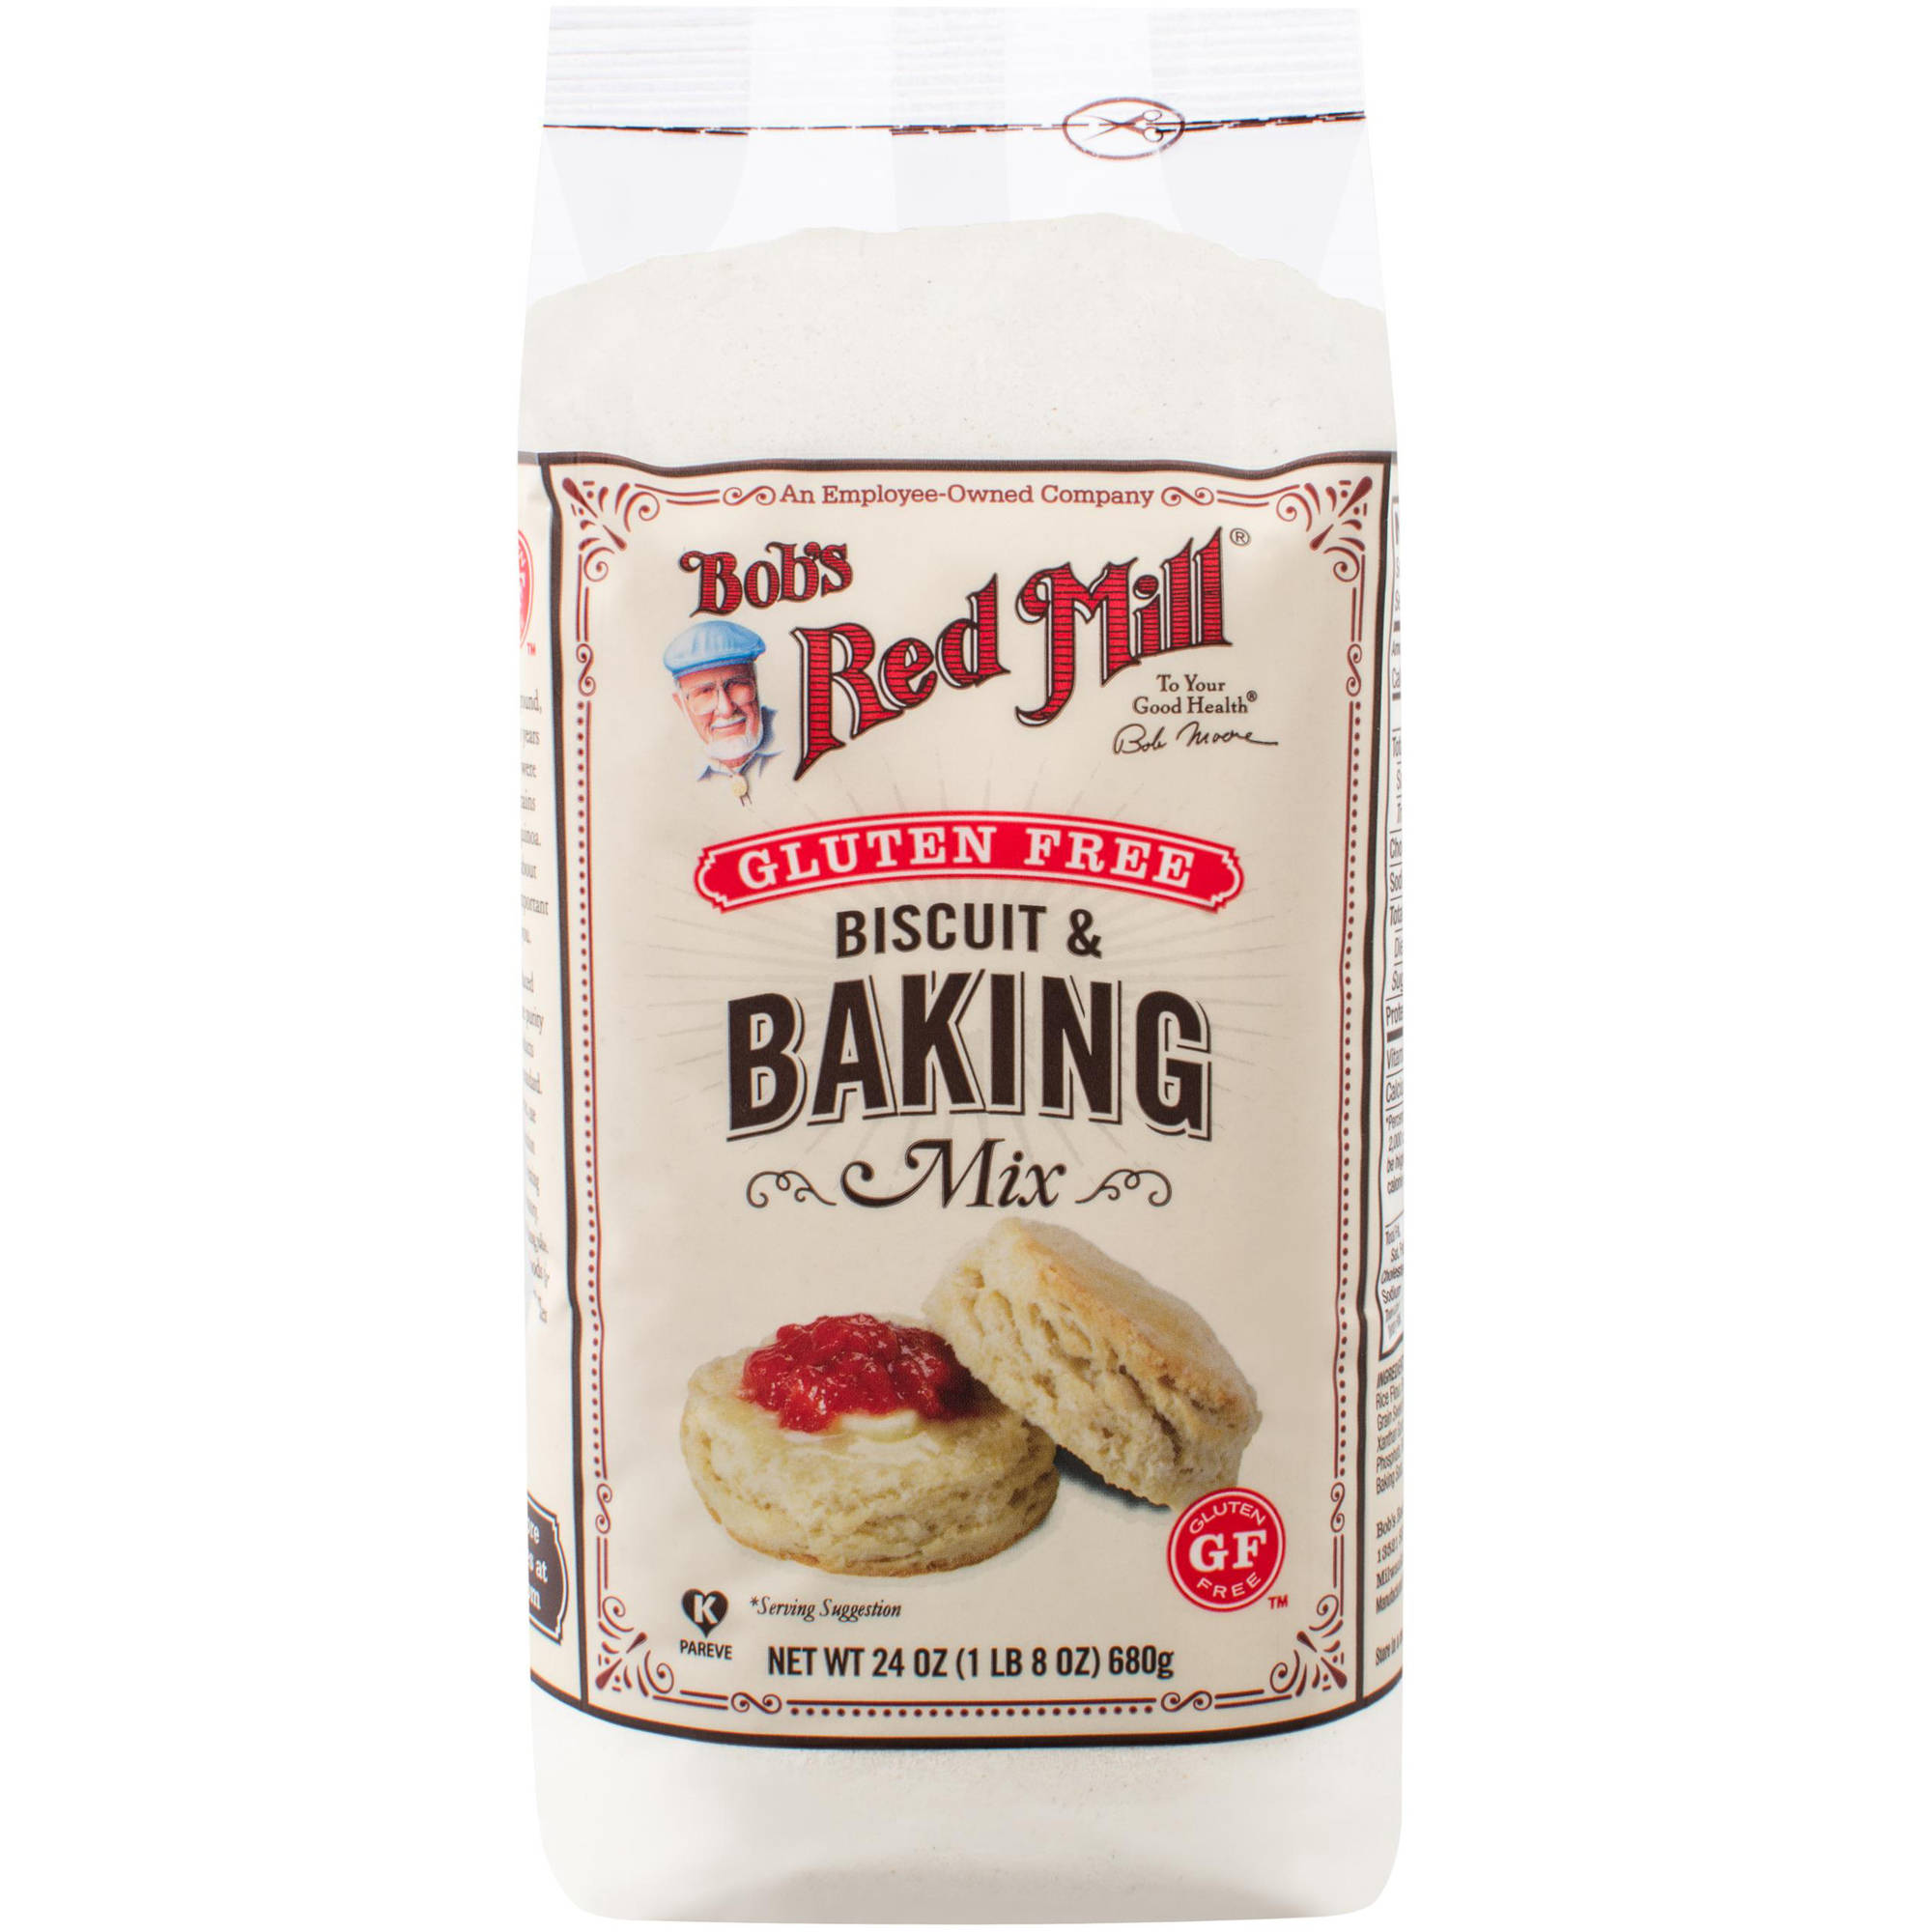 Bob's Red Mill Biscuit And Baking Mix, 24 oz (Pack of 4)